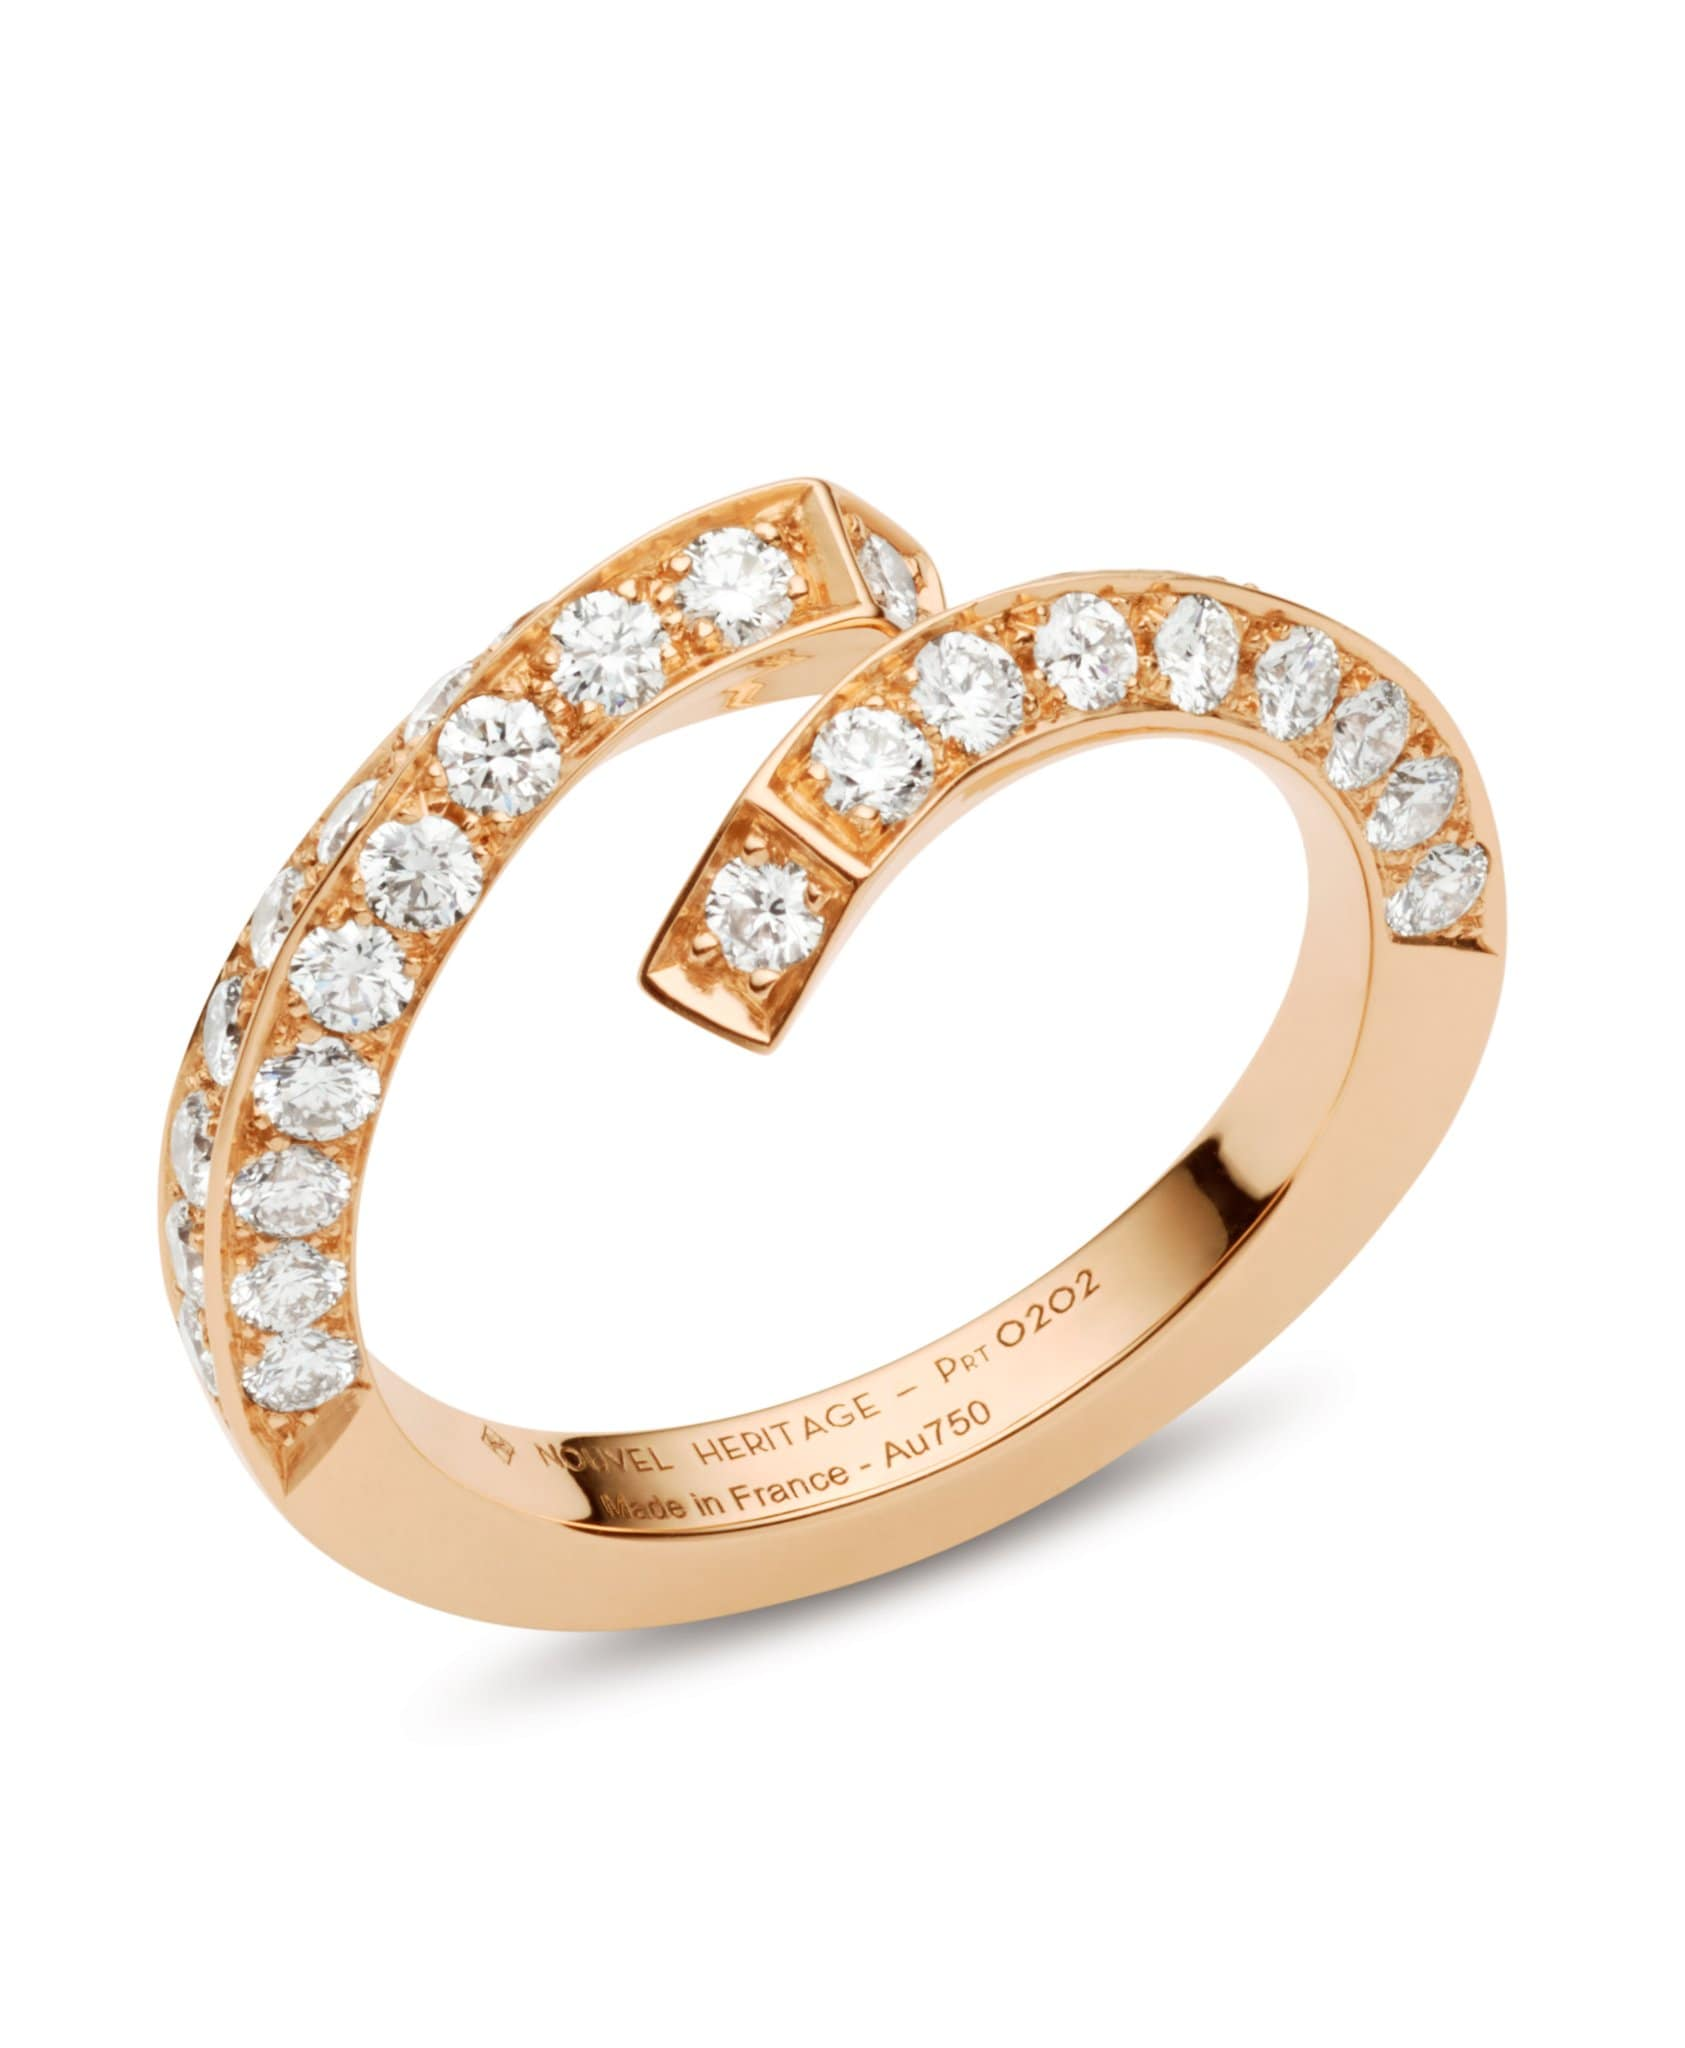 Diamond Thread Ring: Discover Luxury Fine Jewelry | Nouvel Heritage || Rose Gold